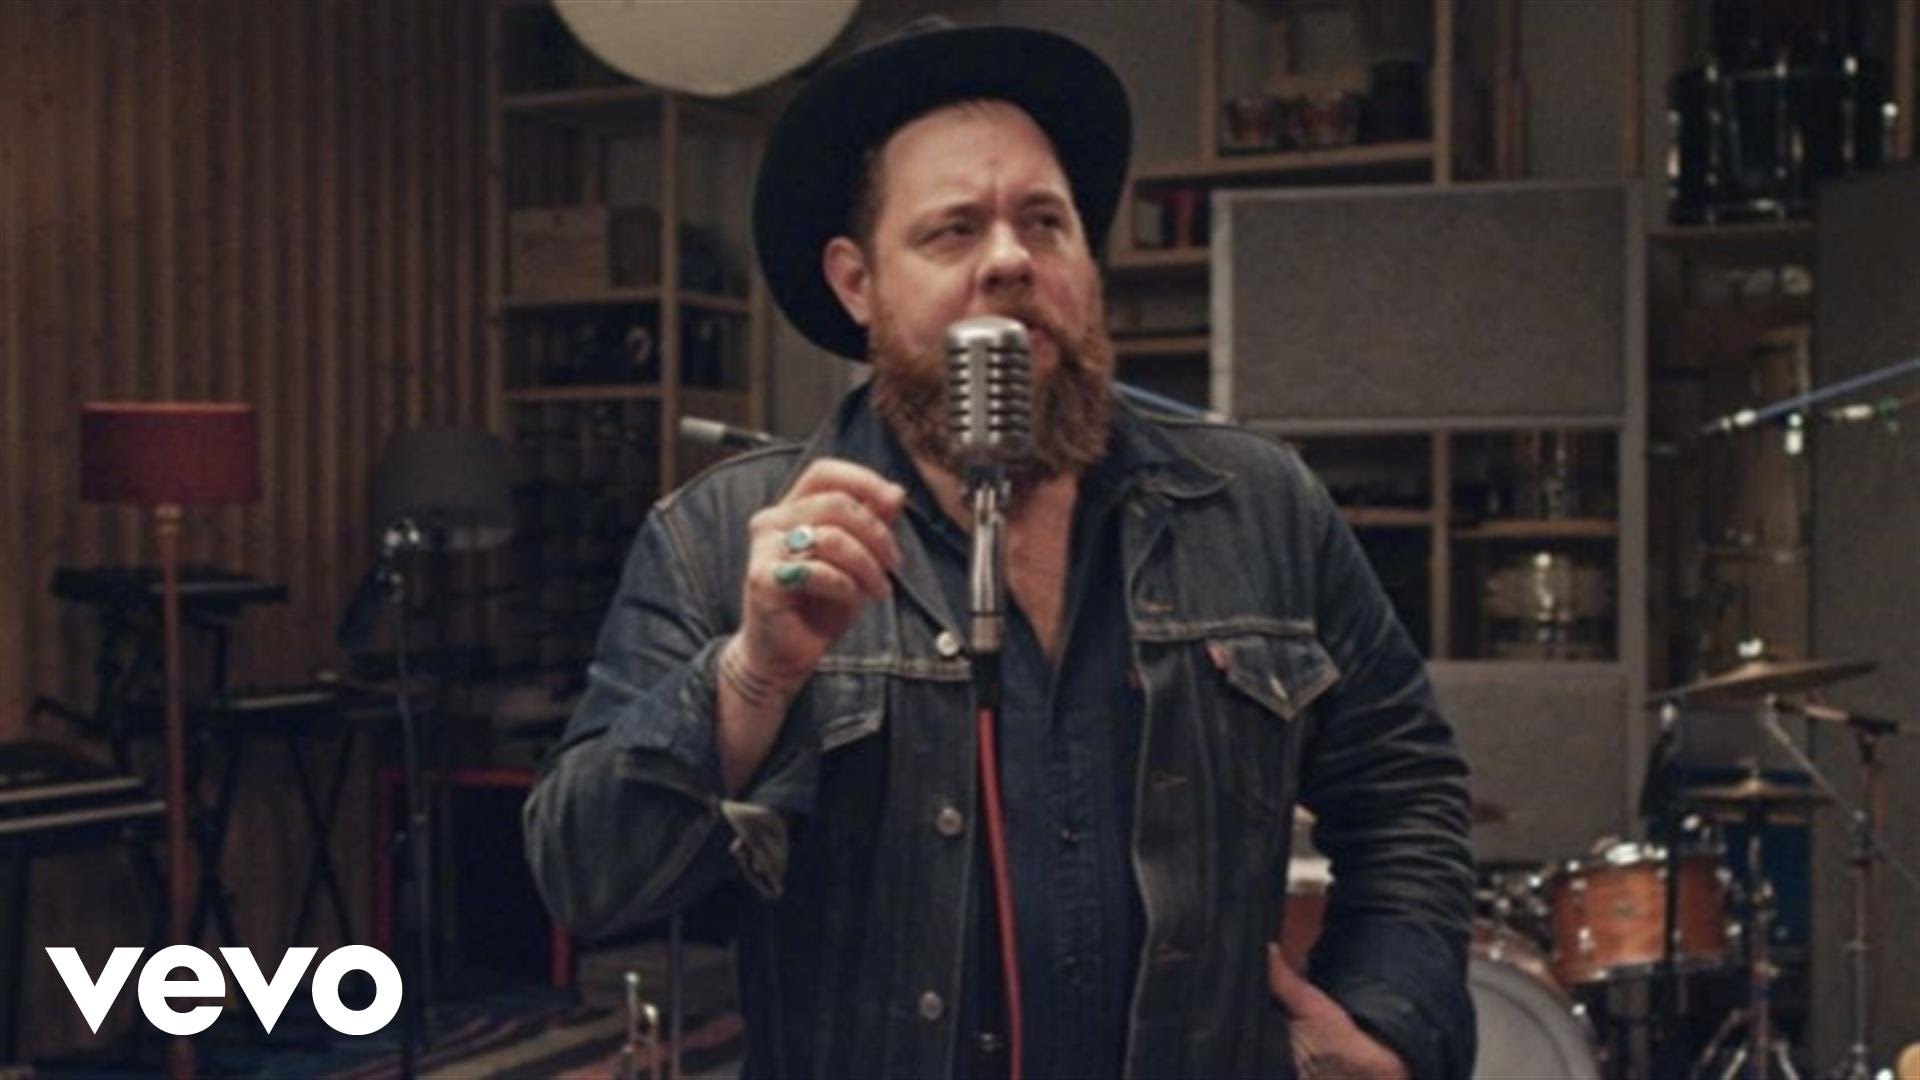 Nathaniel Rateliff, Isaac Slade of The Fray and more set for music education benefit at Colorado's 1stBank Center, tickets on sale now